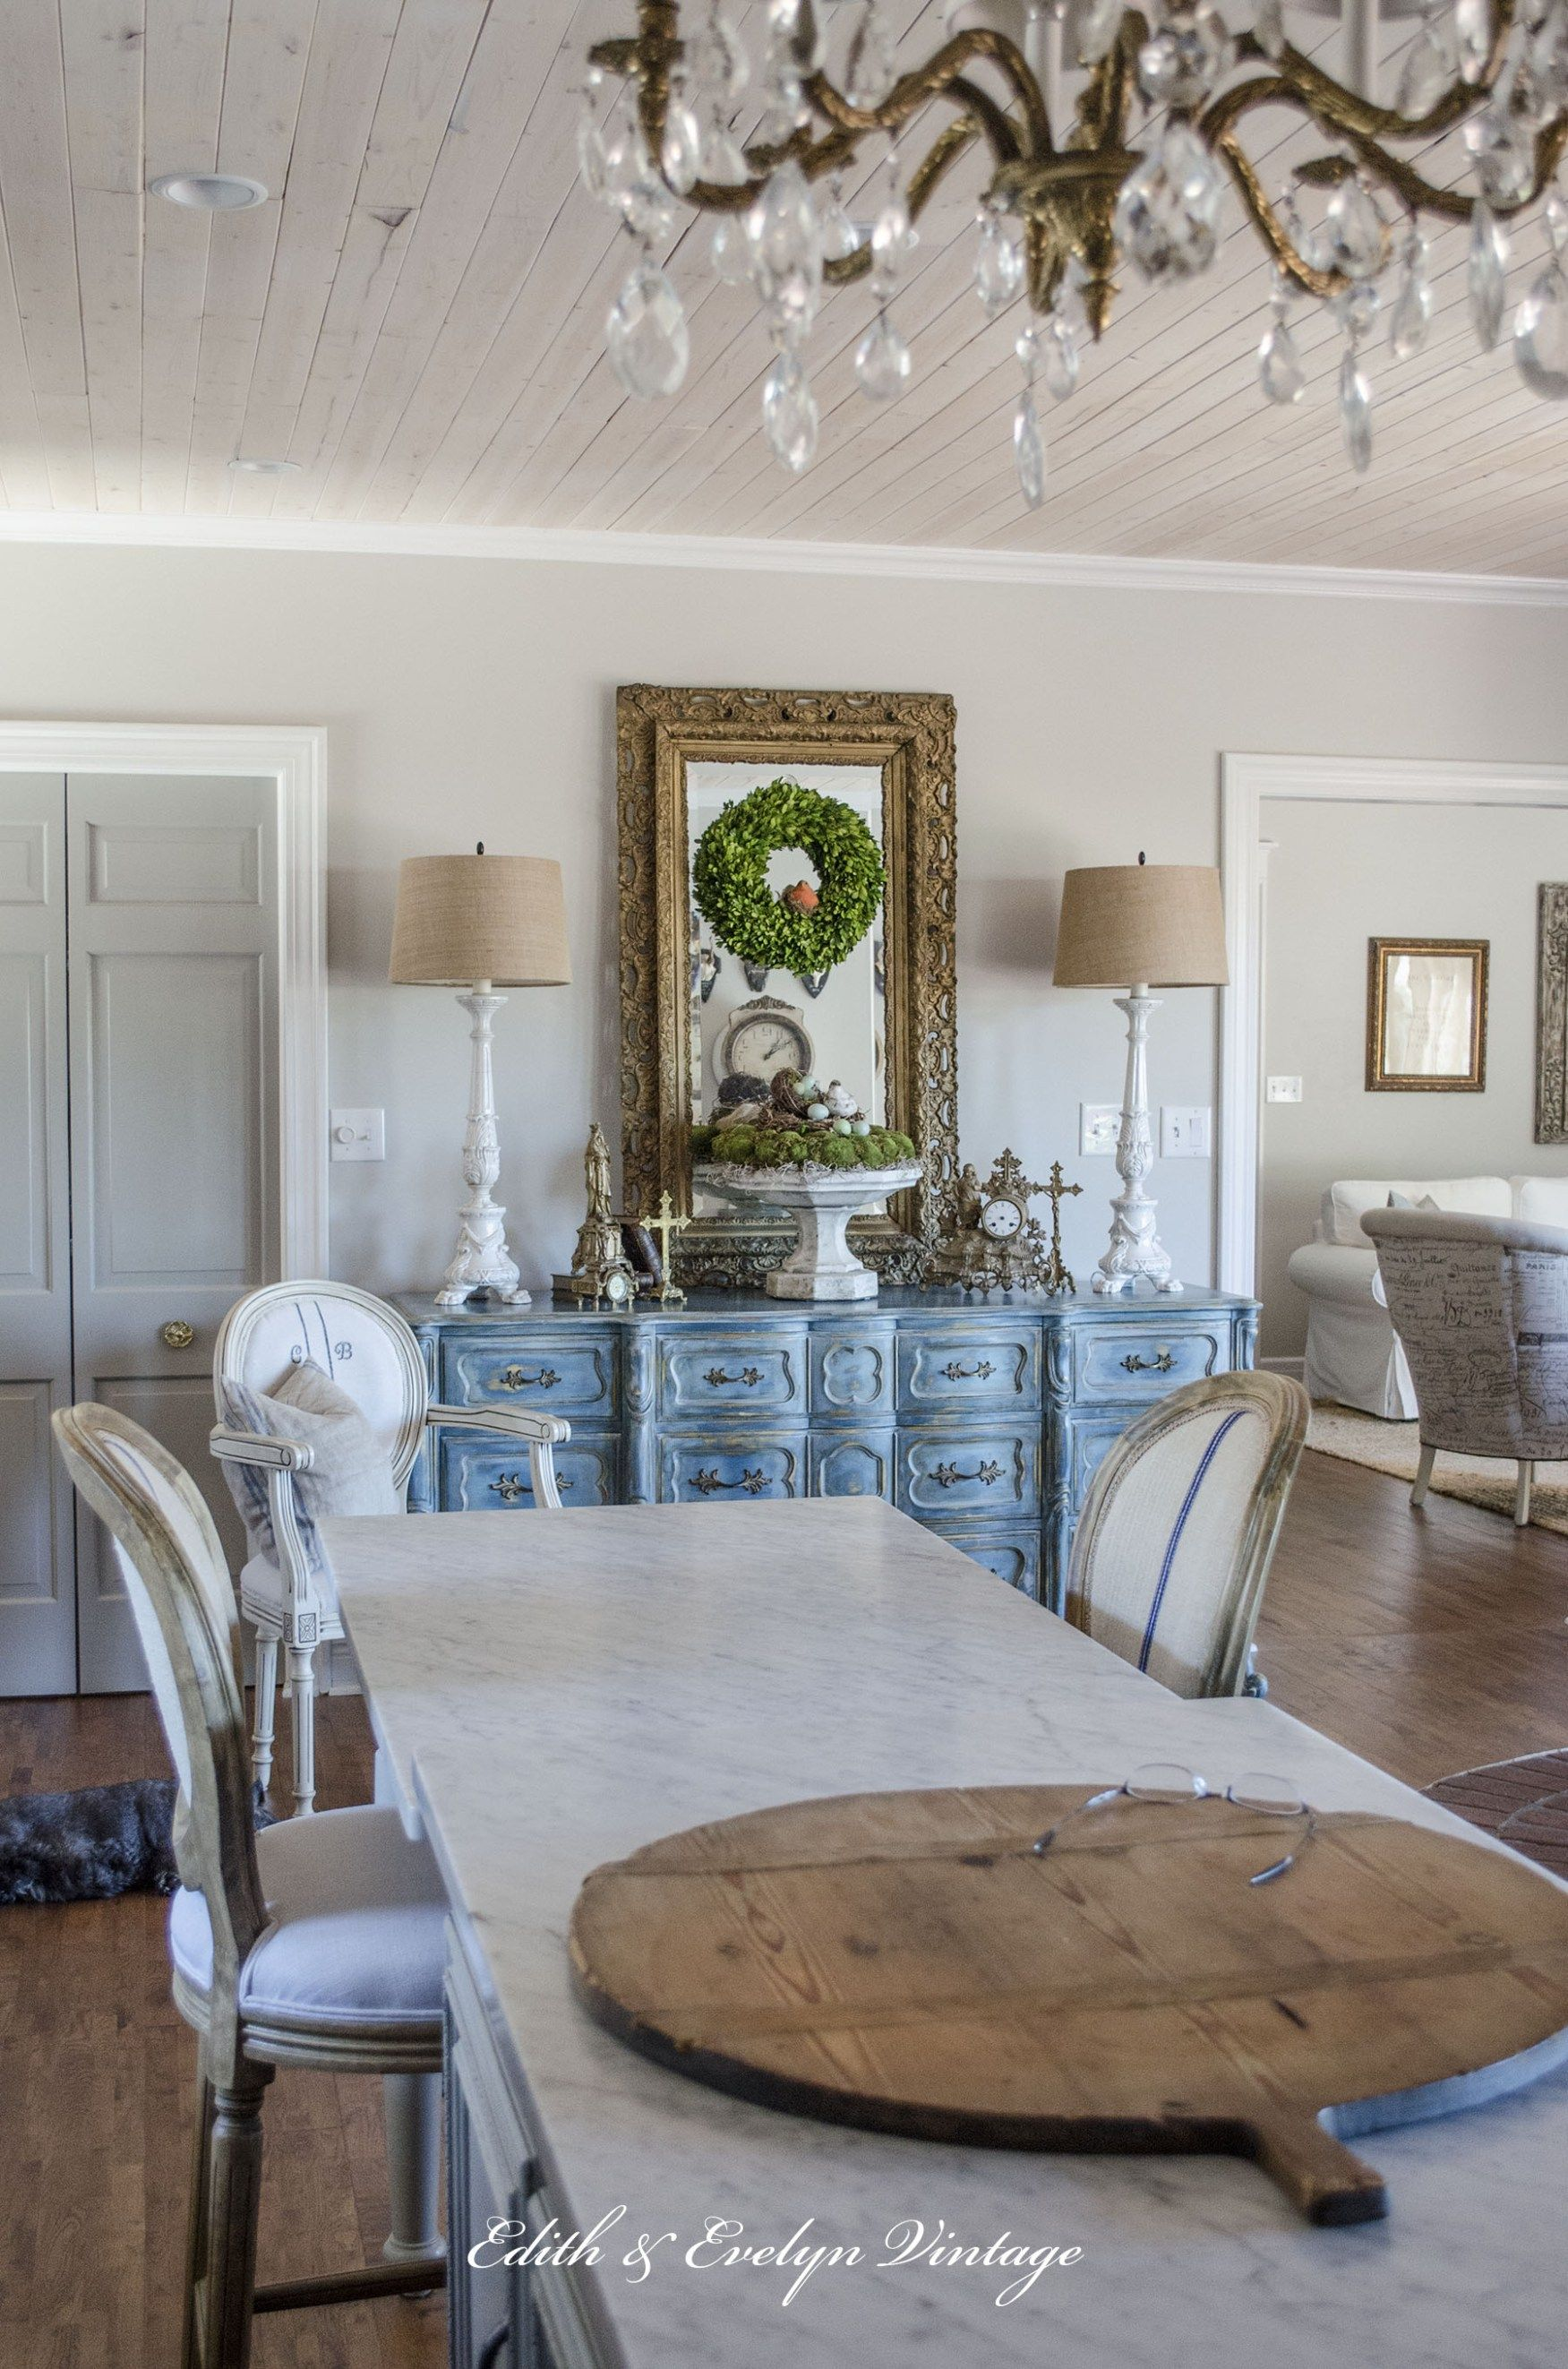 A Blue French Provincial Dresser | French provincial dresser, French ...